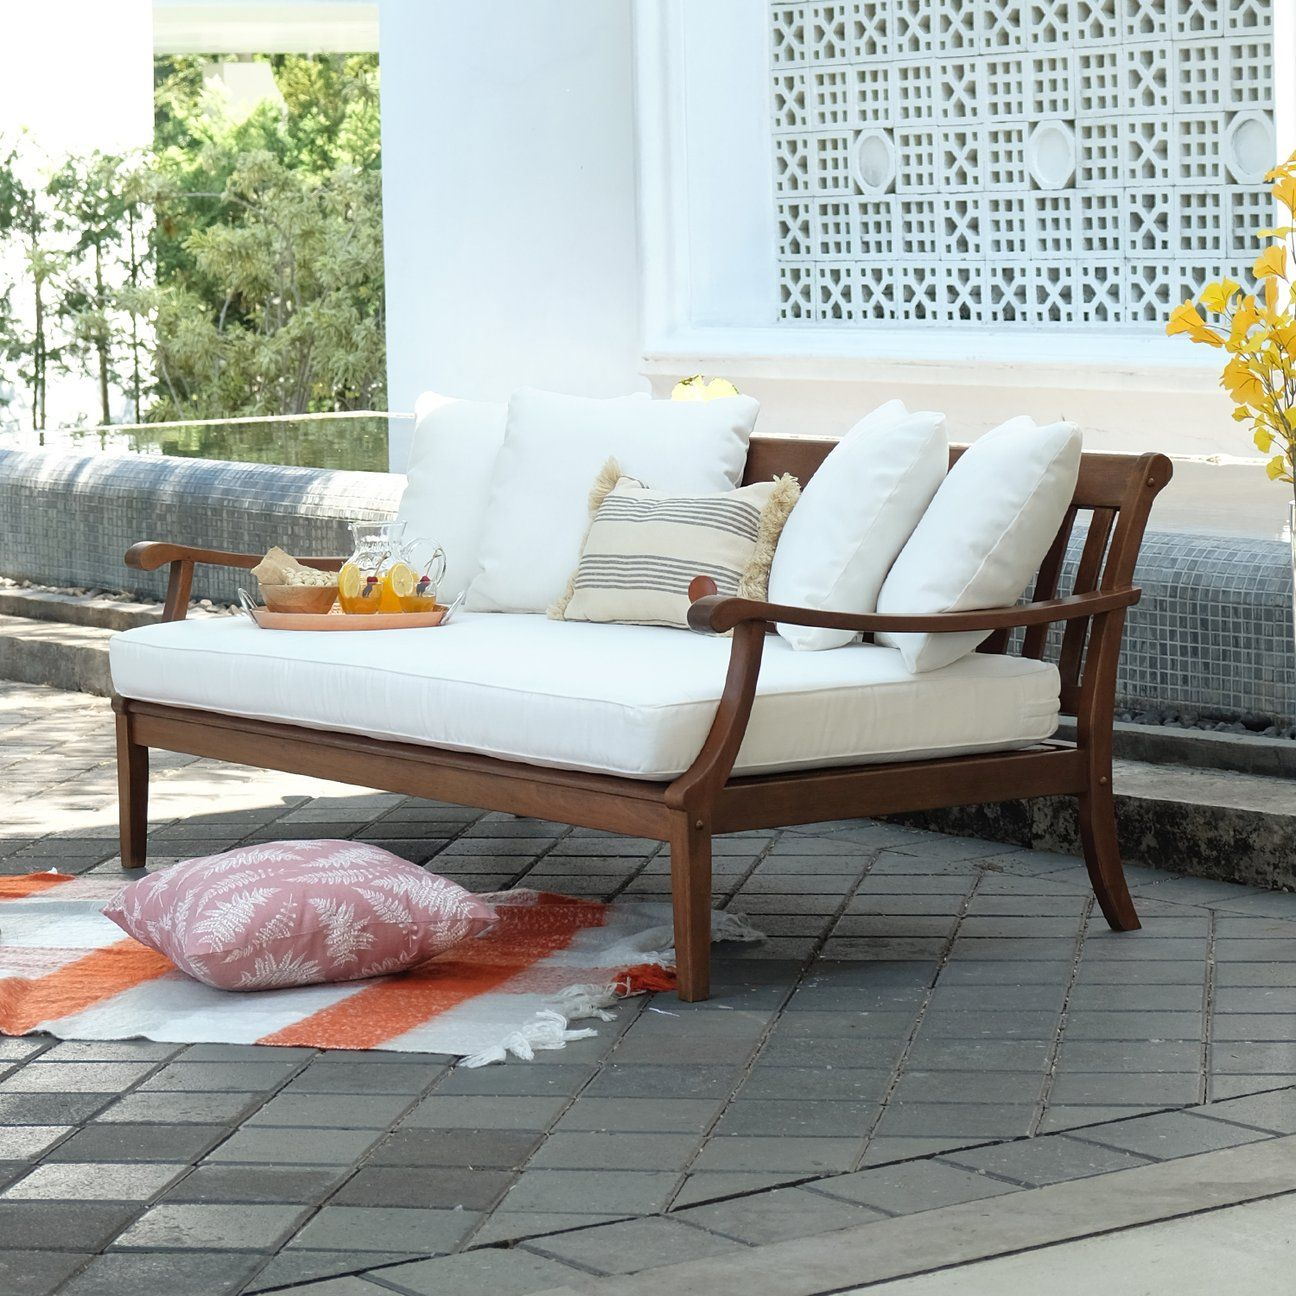 Maine Solid Wood Outdoor Sofa Day Bed With White Cushion Outdoor Sofa Wood Daybed Patio Daybed